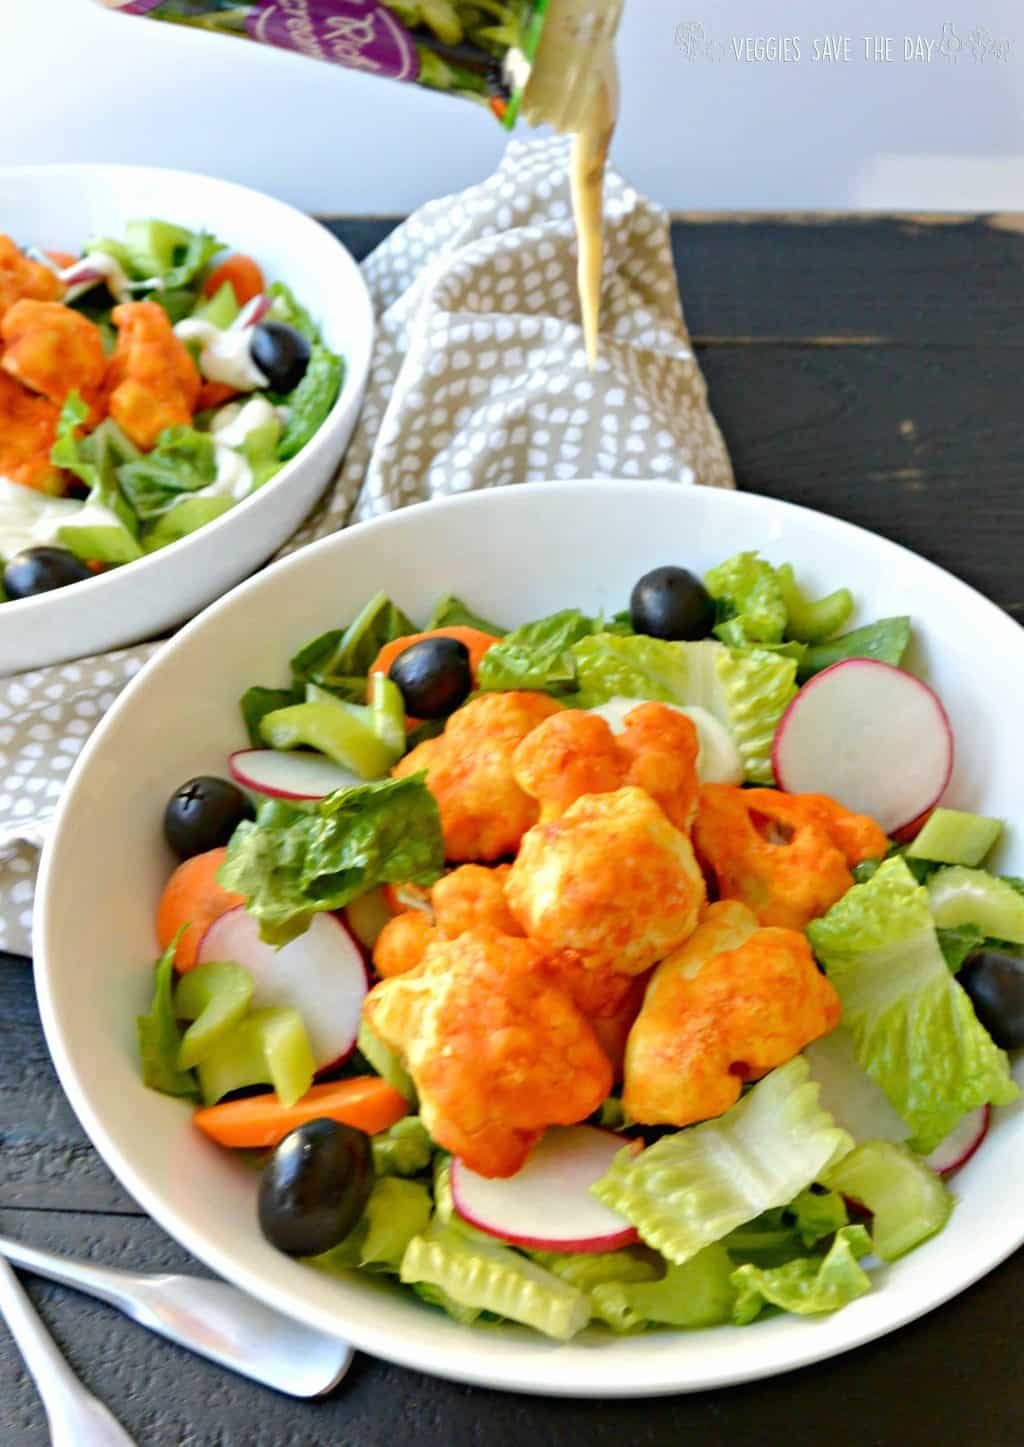 Vegan and Gluten free Buffalo Cauliflower Bites Salad | Veggies Save The Day